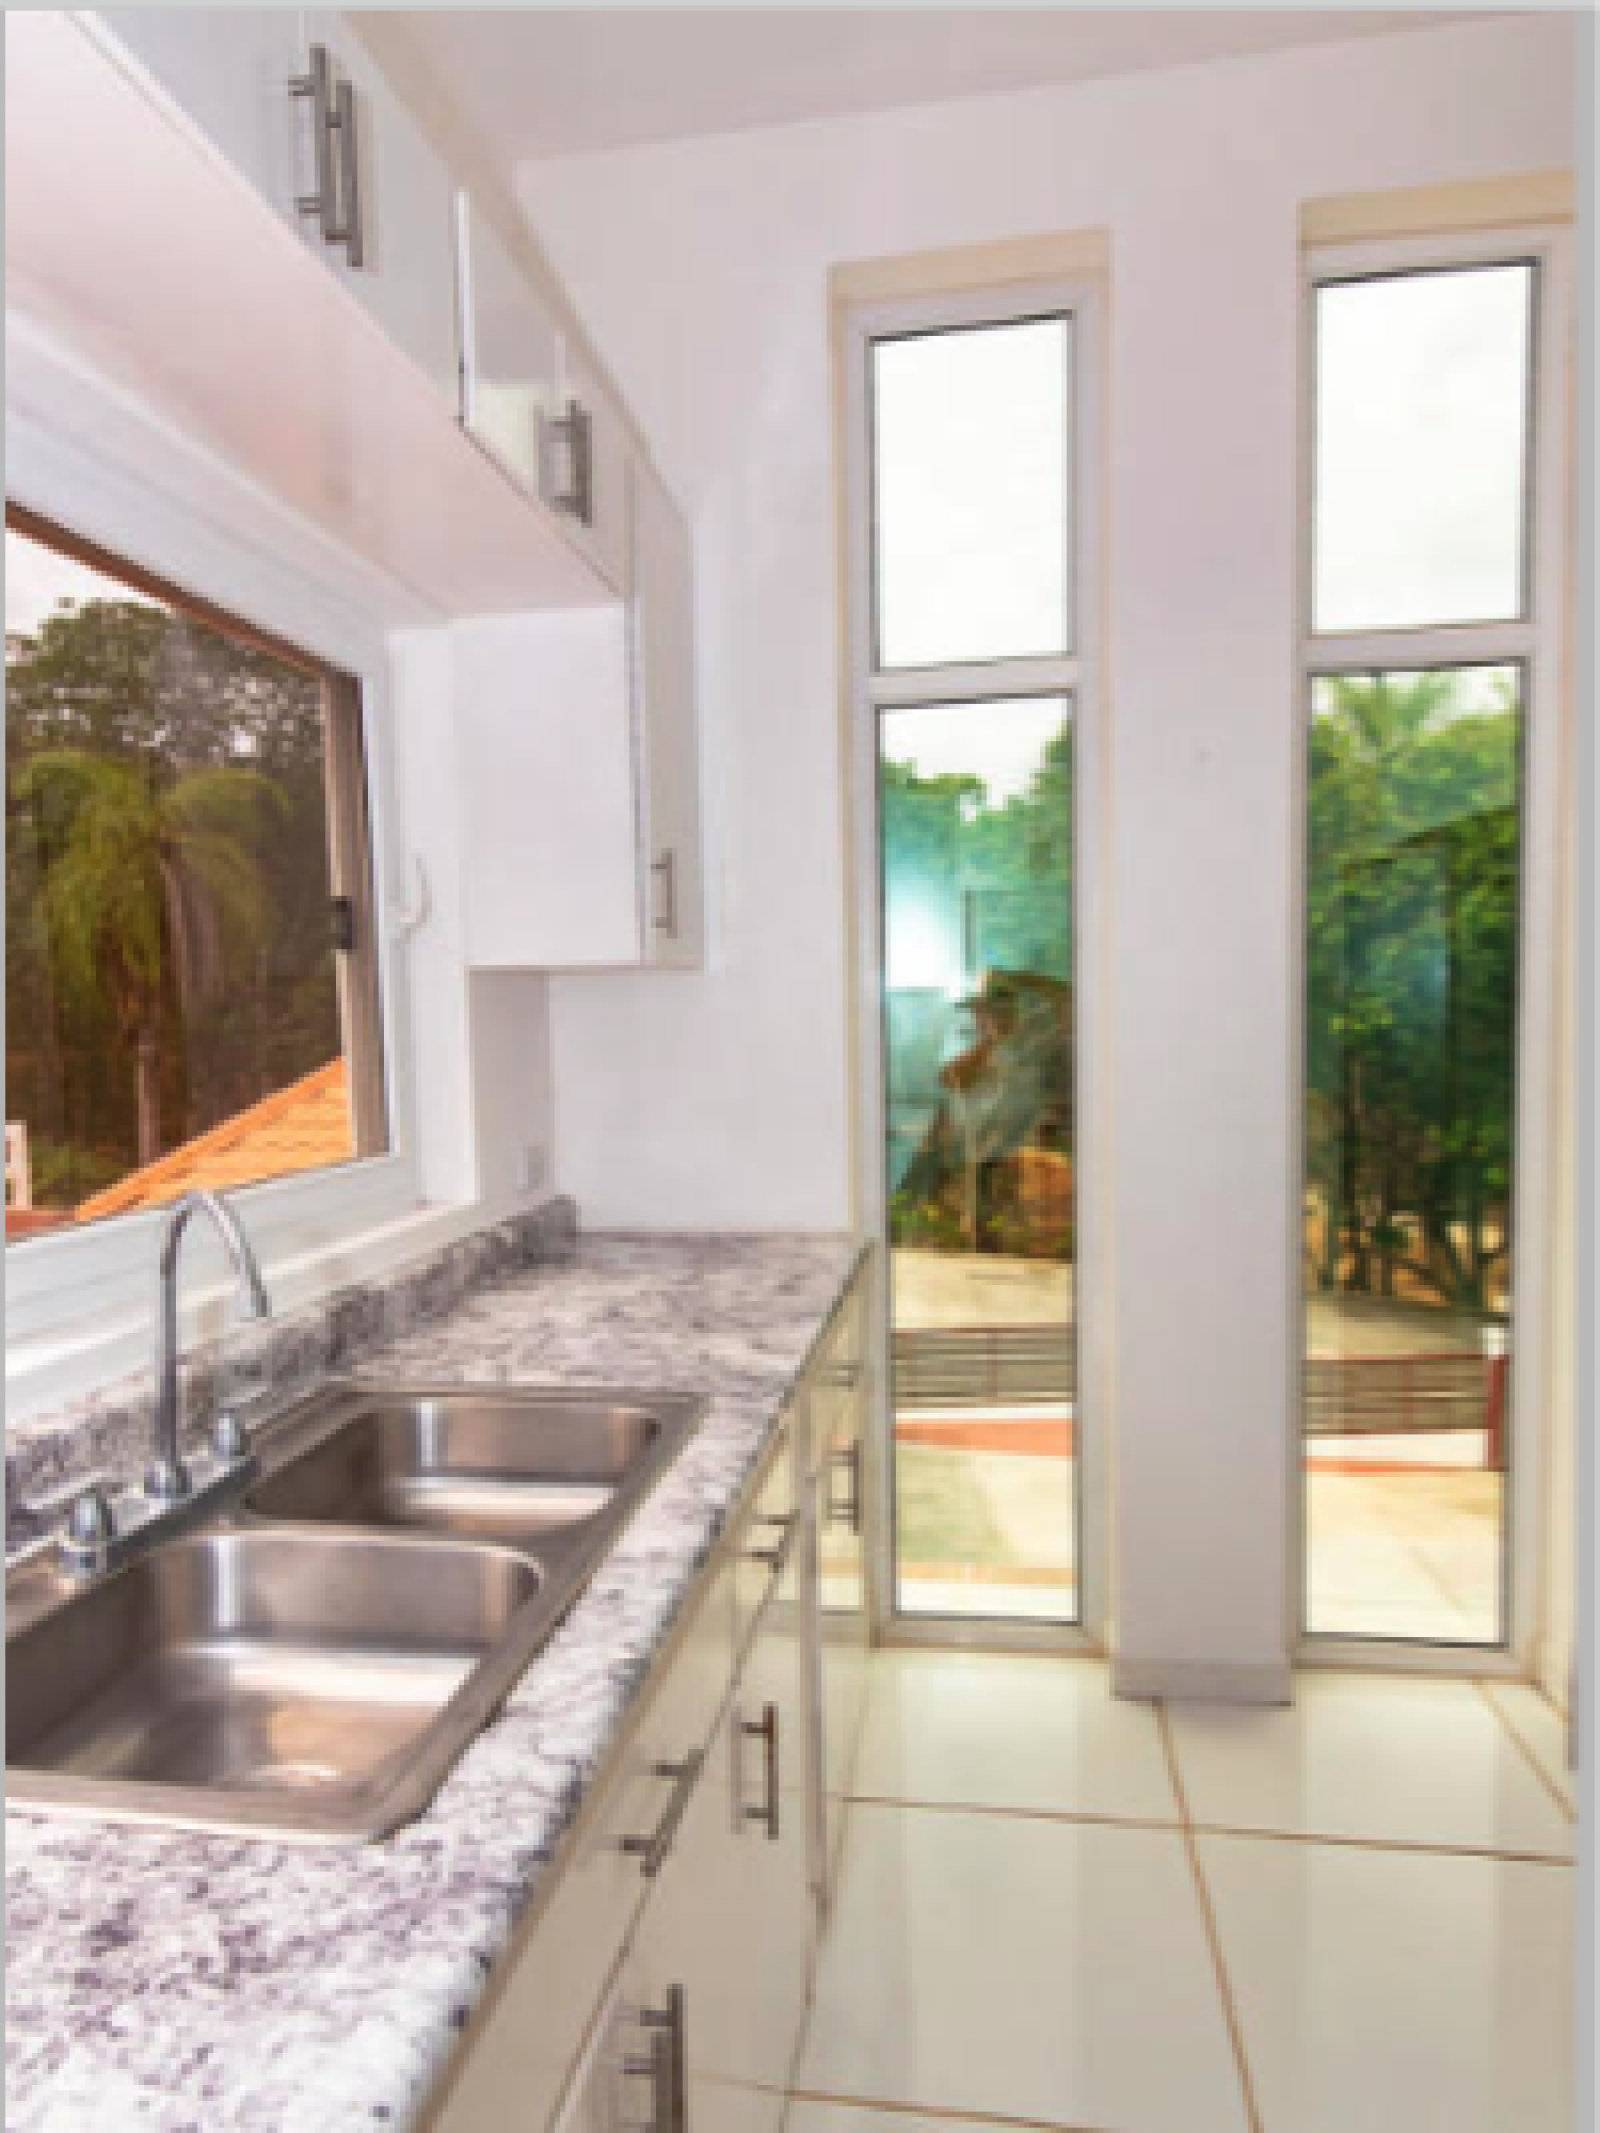 Lovely views from your bright kitchen